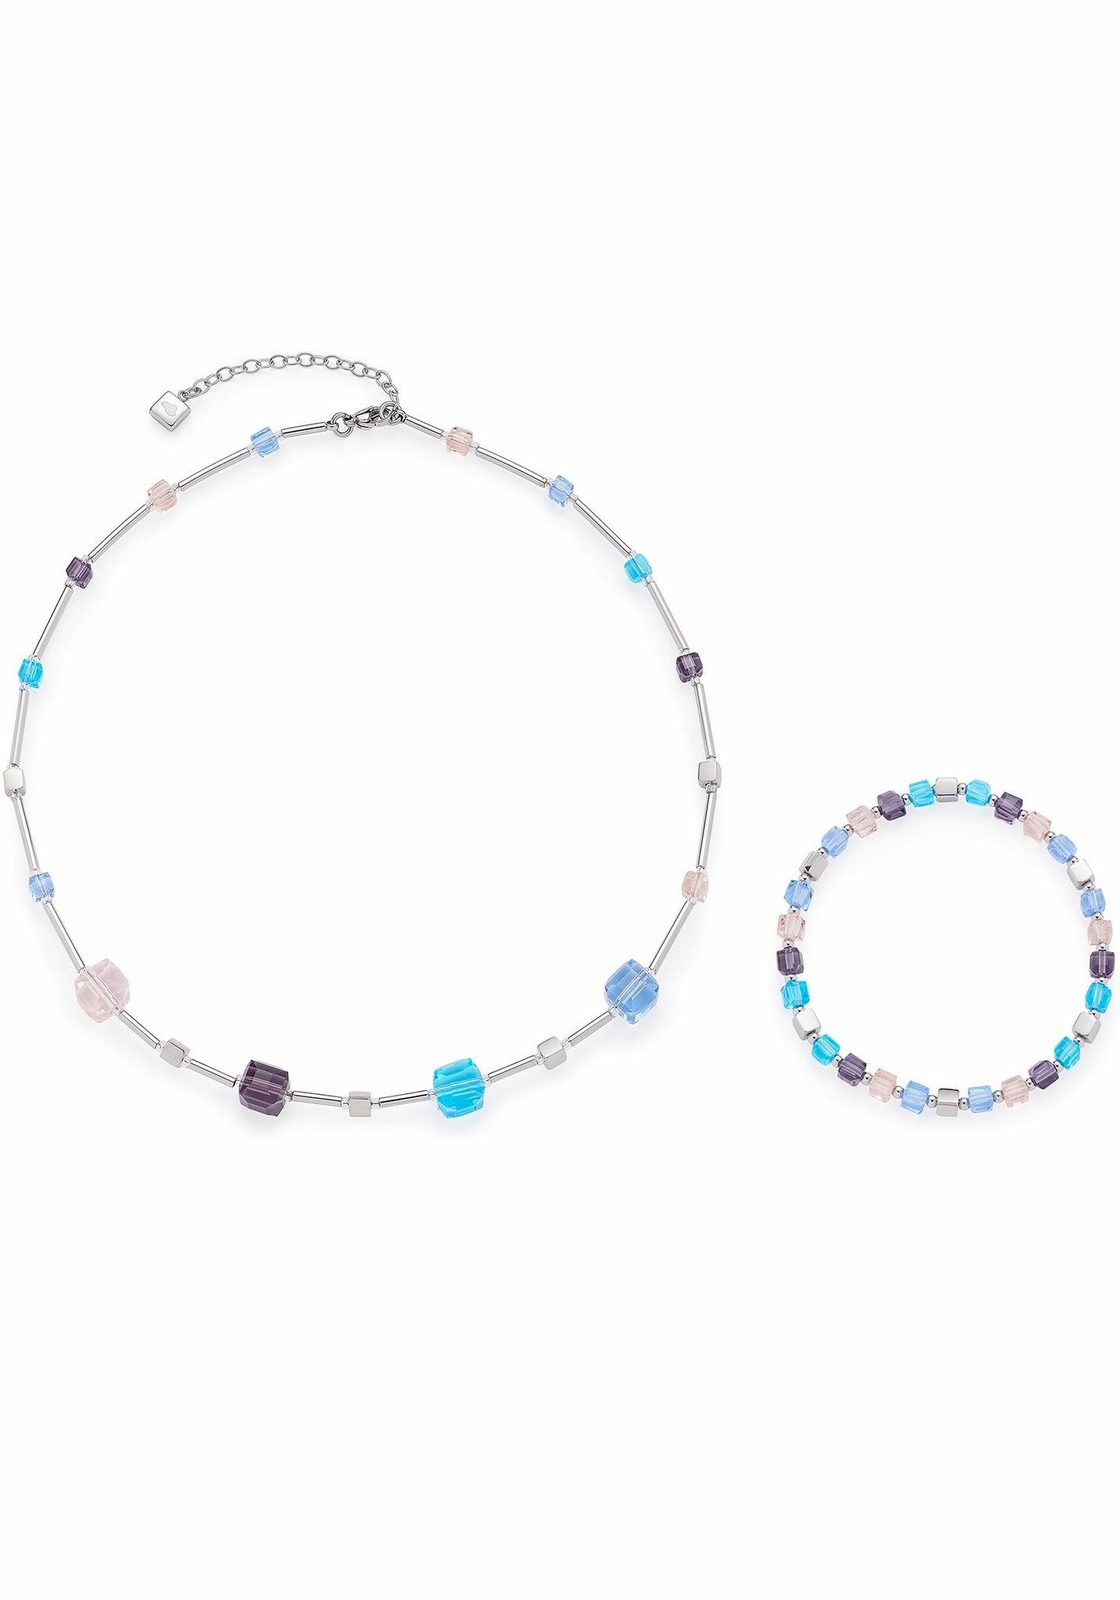 JEWELS BY LEONARDO Ketten und Armband Set »Set Halskette + Cubetto multicolor, 016290« (Set, 2 tlg), mit Glassteinen